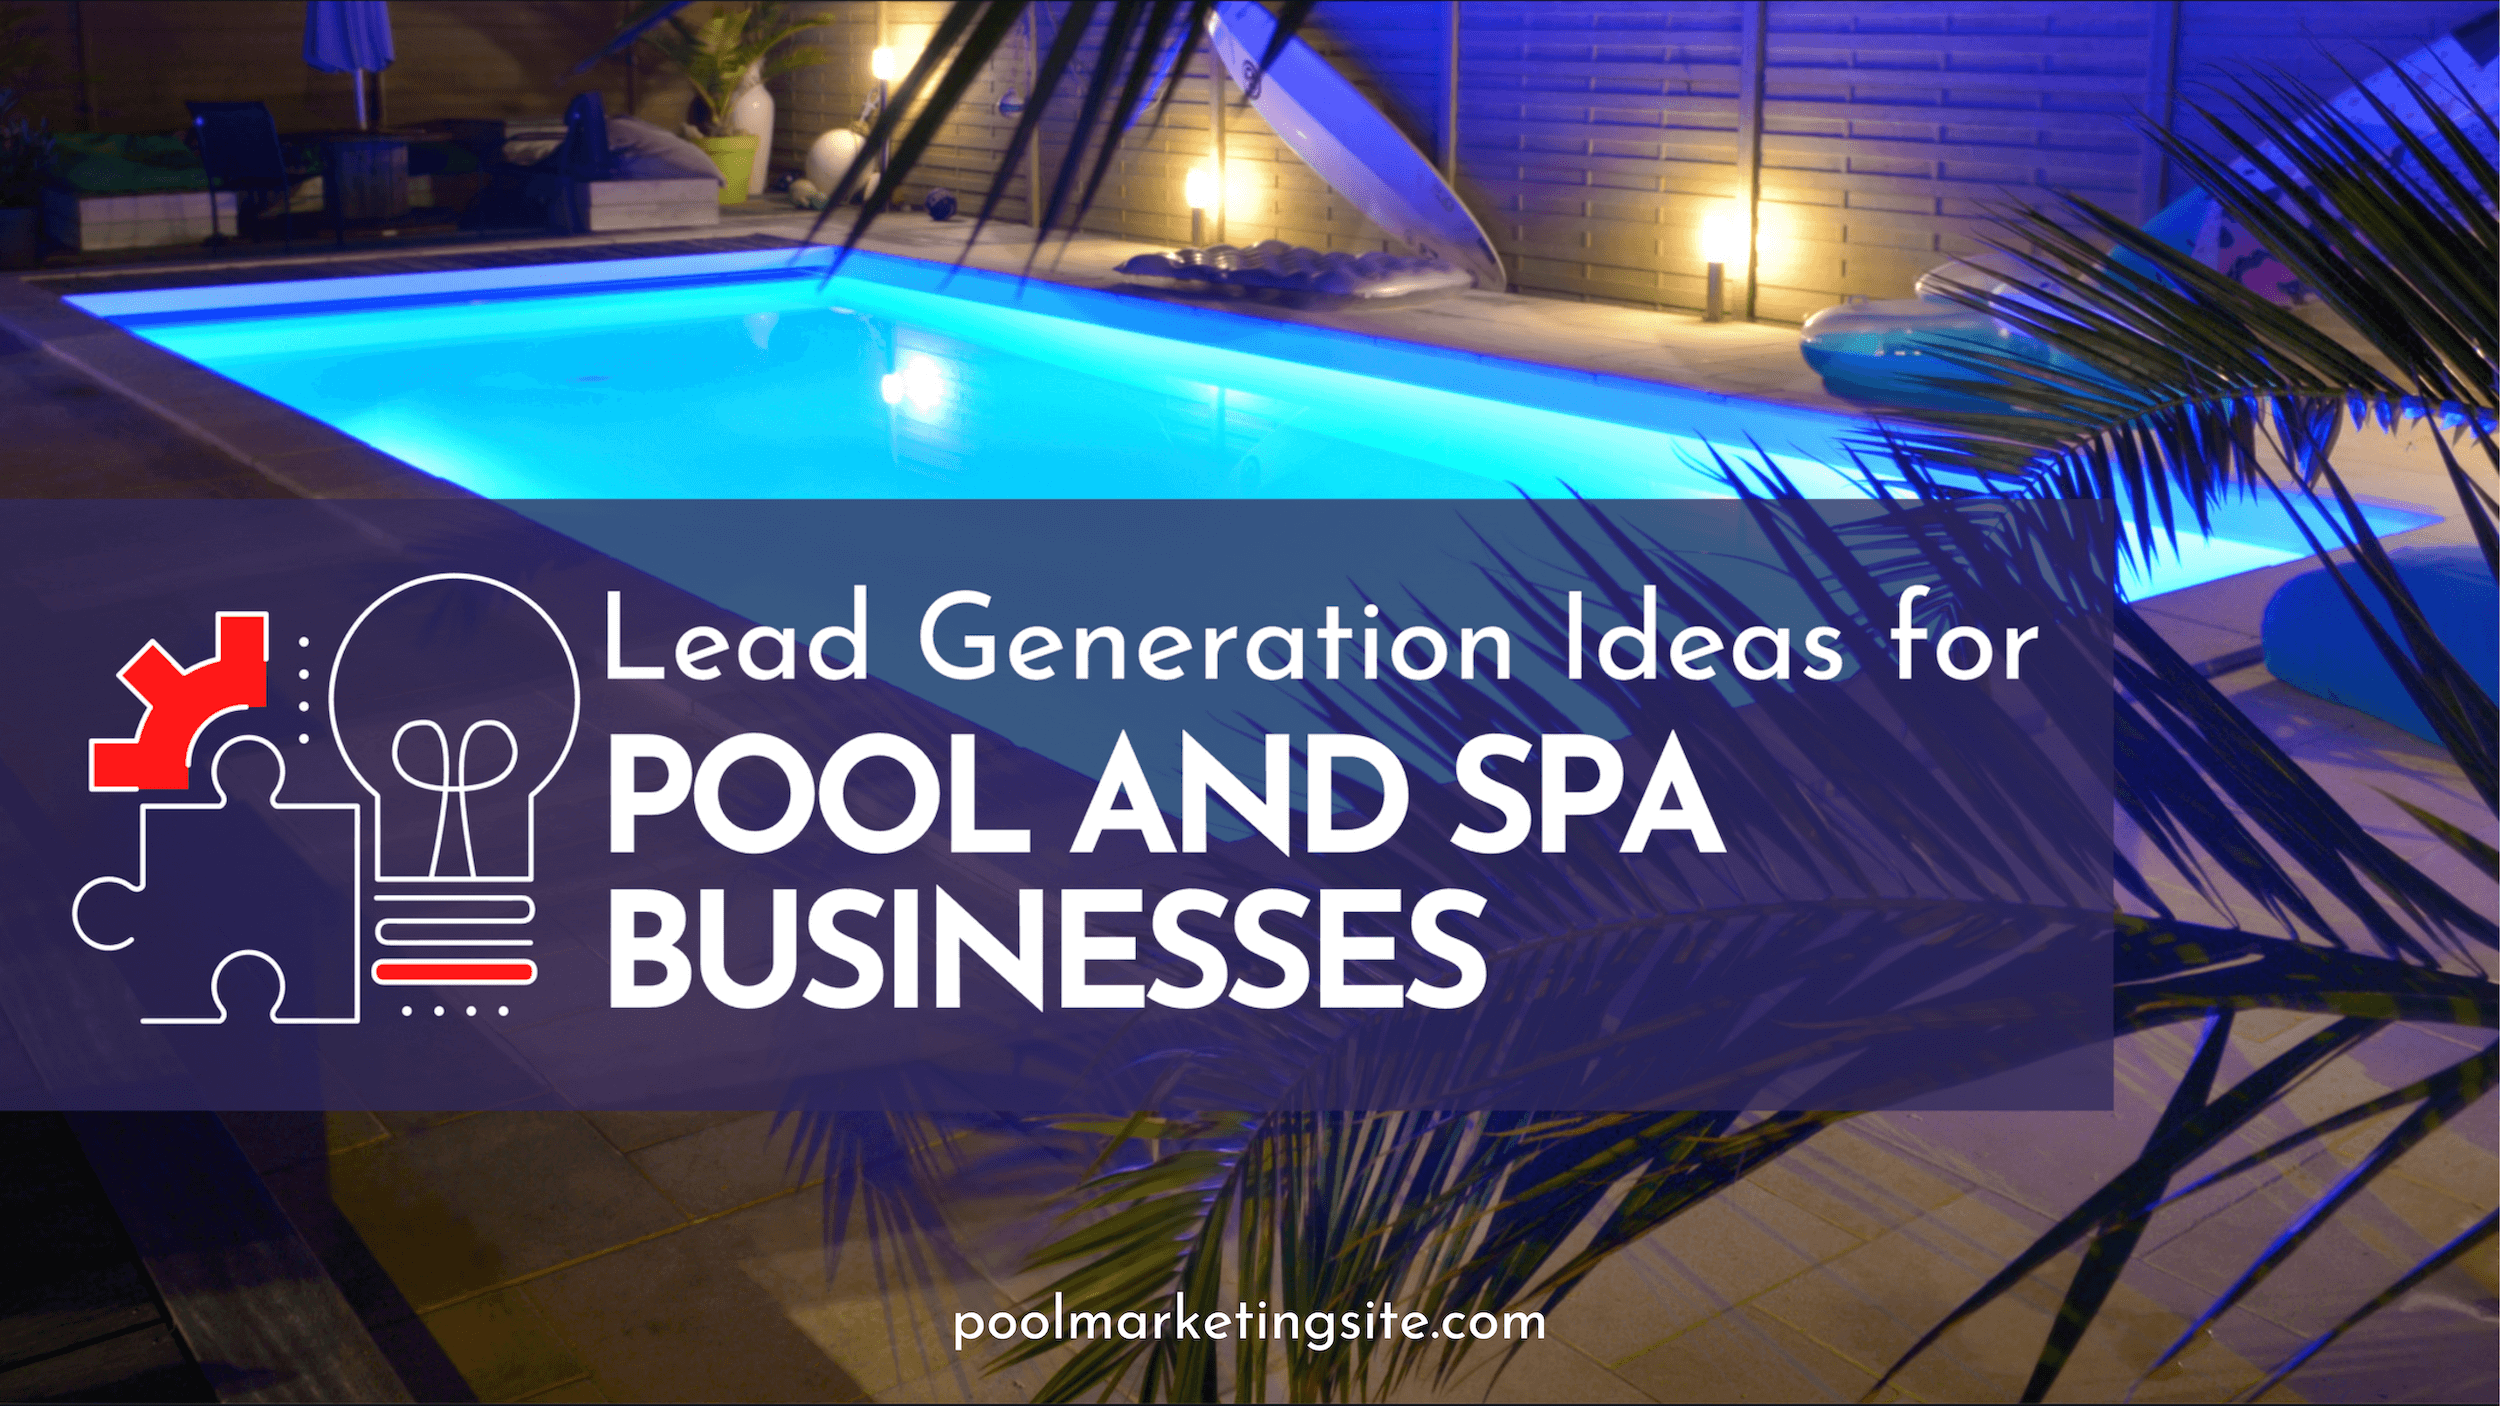 Lead Generation Ideas for Pool and Spa Businesses